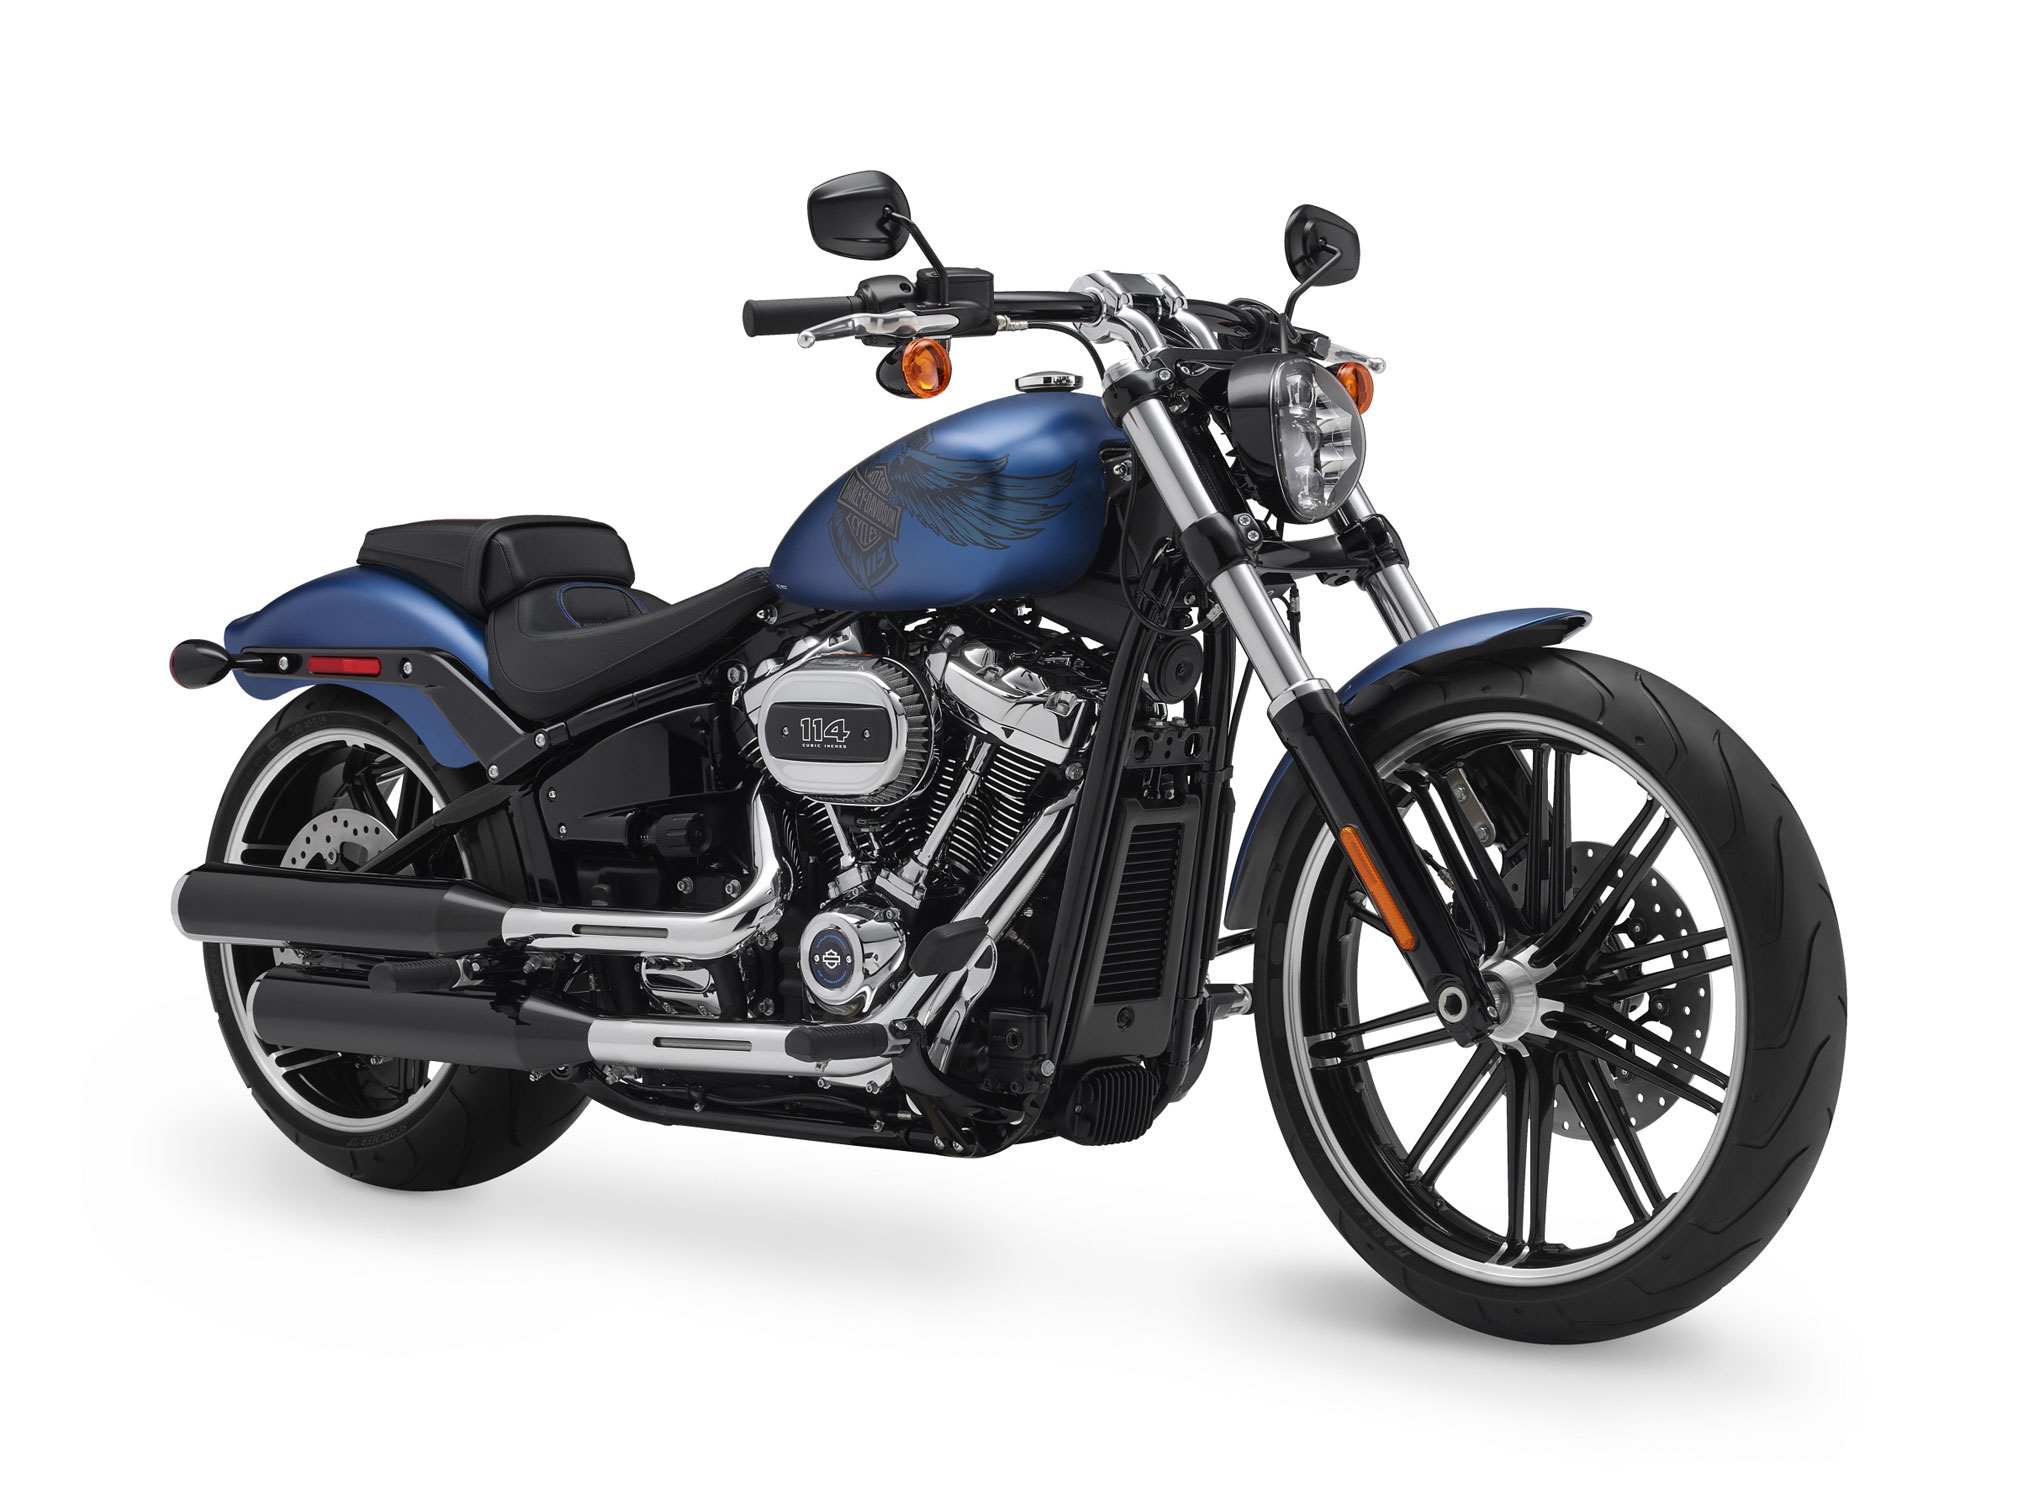 2018 harley davidson breakout 114 115th anniversary review total motorcycle. Black Bedroom Furniture Sets. Home Design Ideas